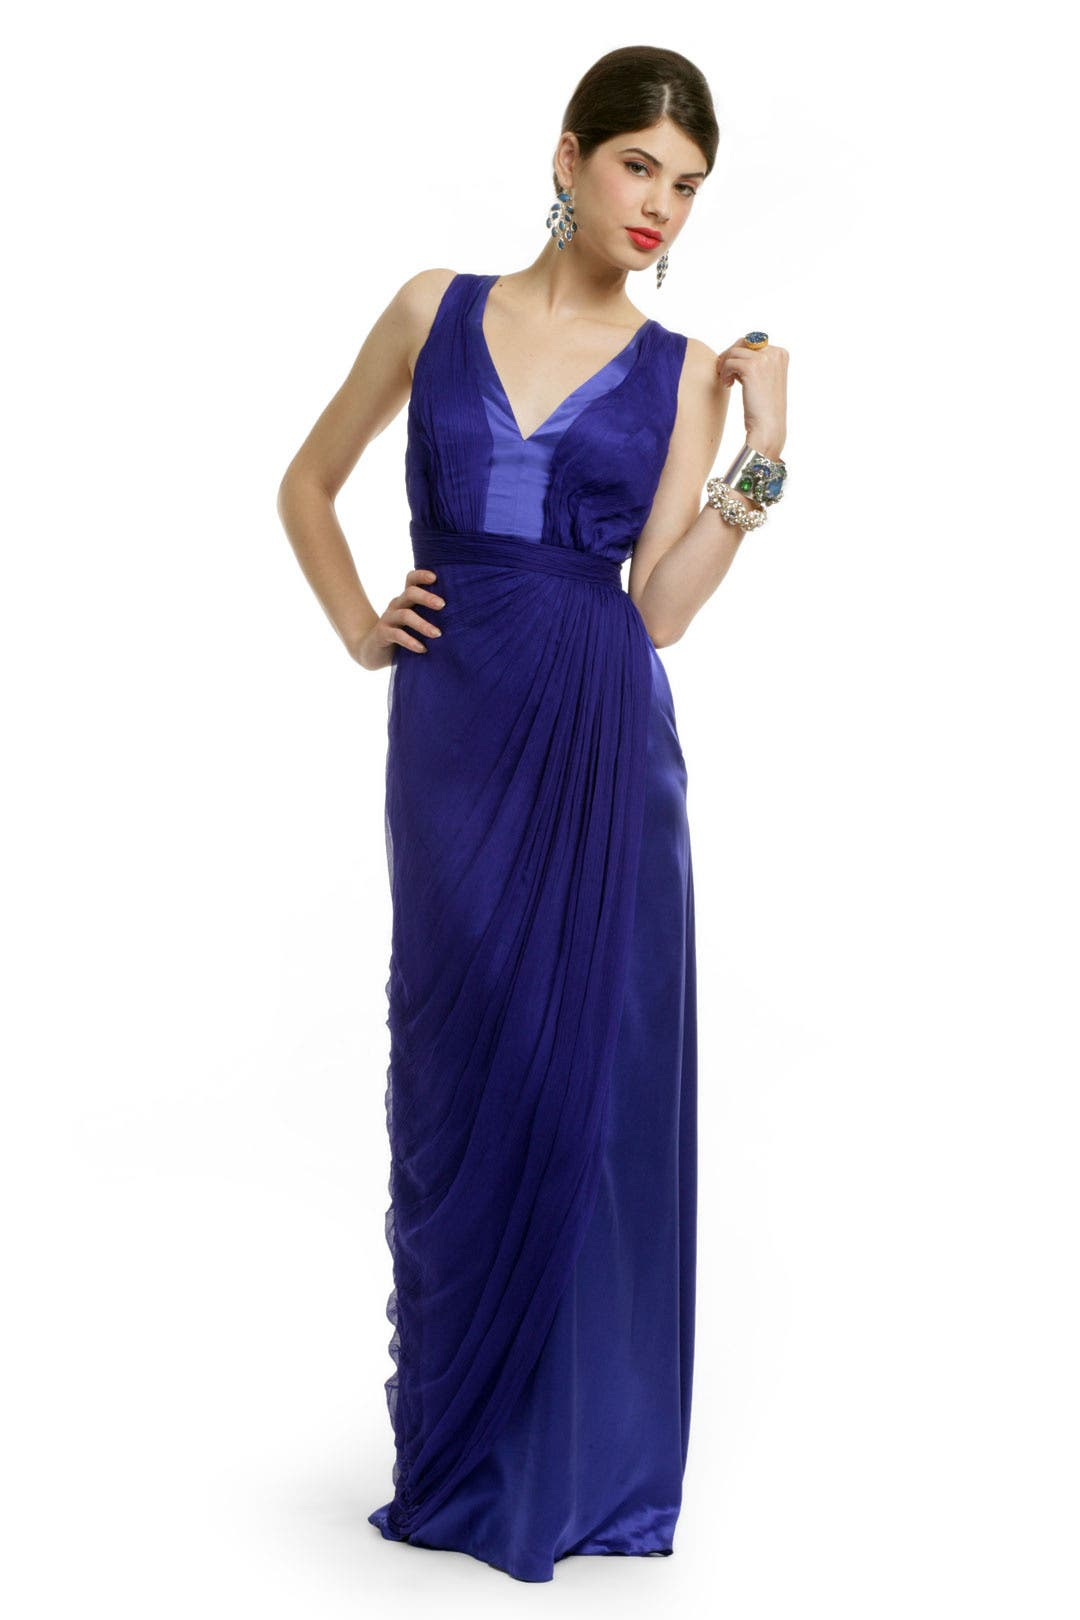 Cerulean Duchess Gown by Carlos Miele for $94 | Rent the Runway